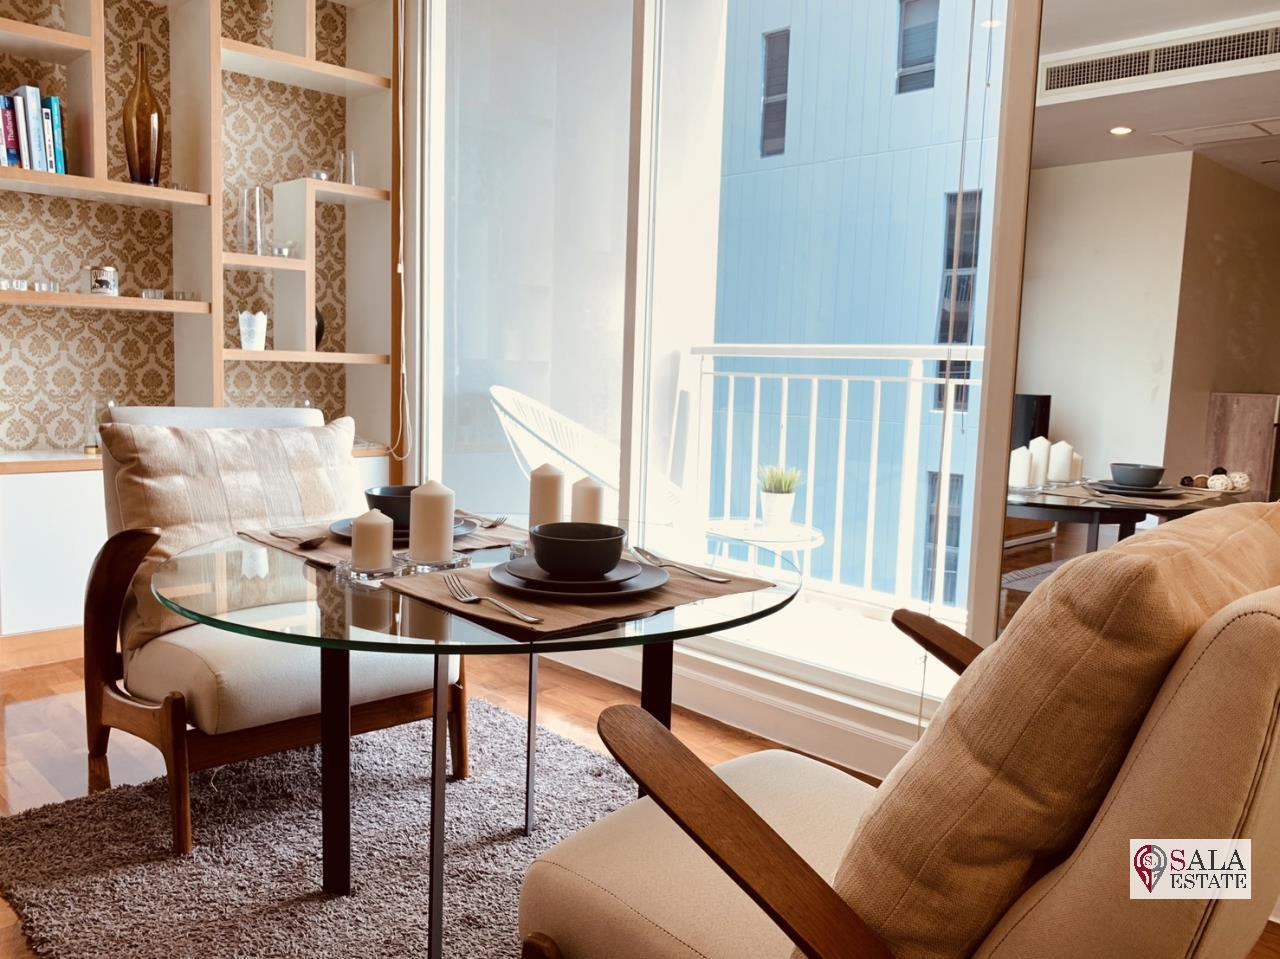 SALA ESTATE Agency's ( FOR RENT ) BAAN SIRI 31 – BTS PHROM PHONG, 58 SQM 1 BEDROOM 1 BATHROOM, FULLY FURNISHED, CITY VIEW 4